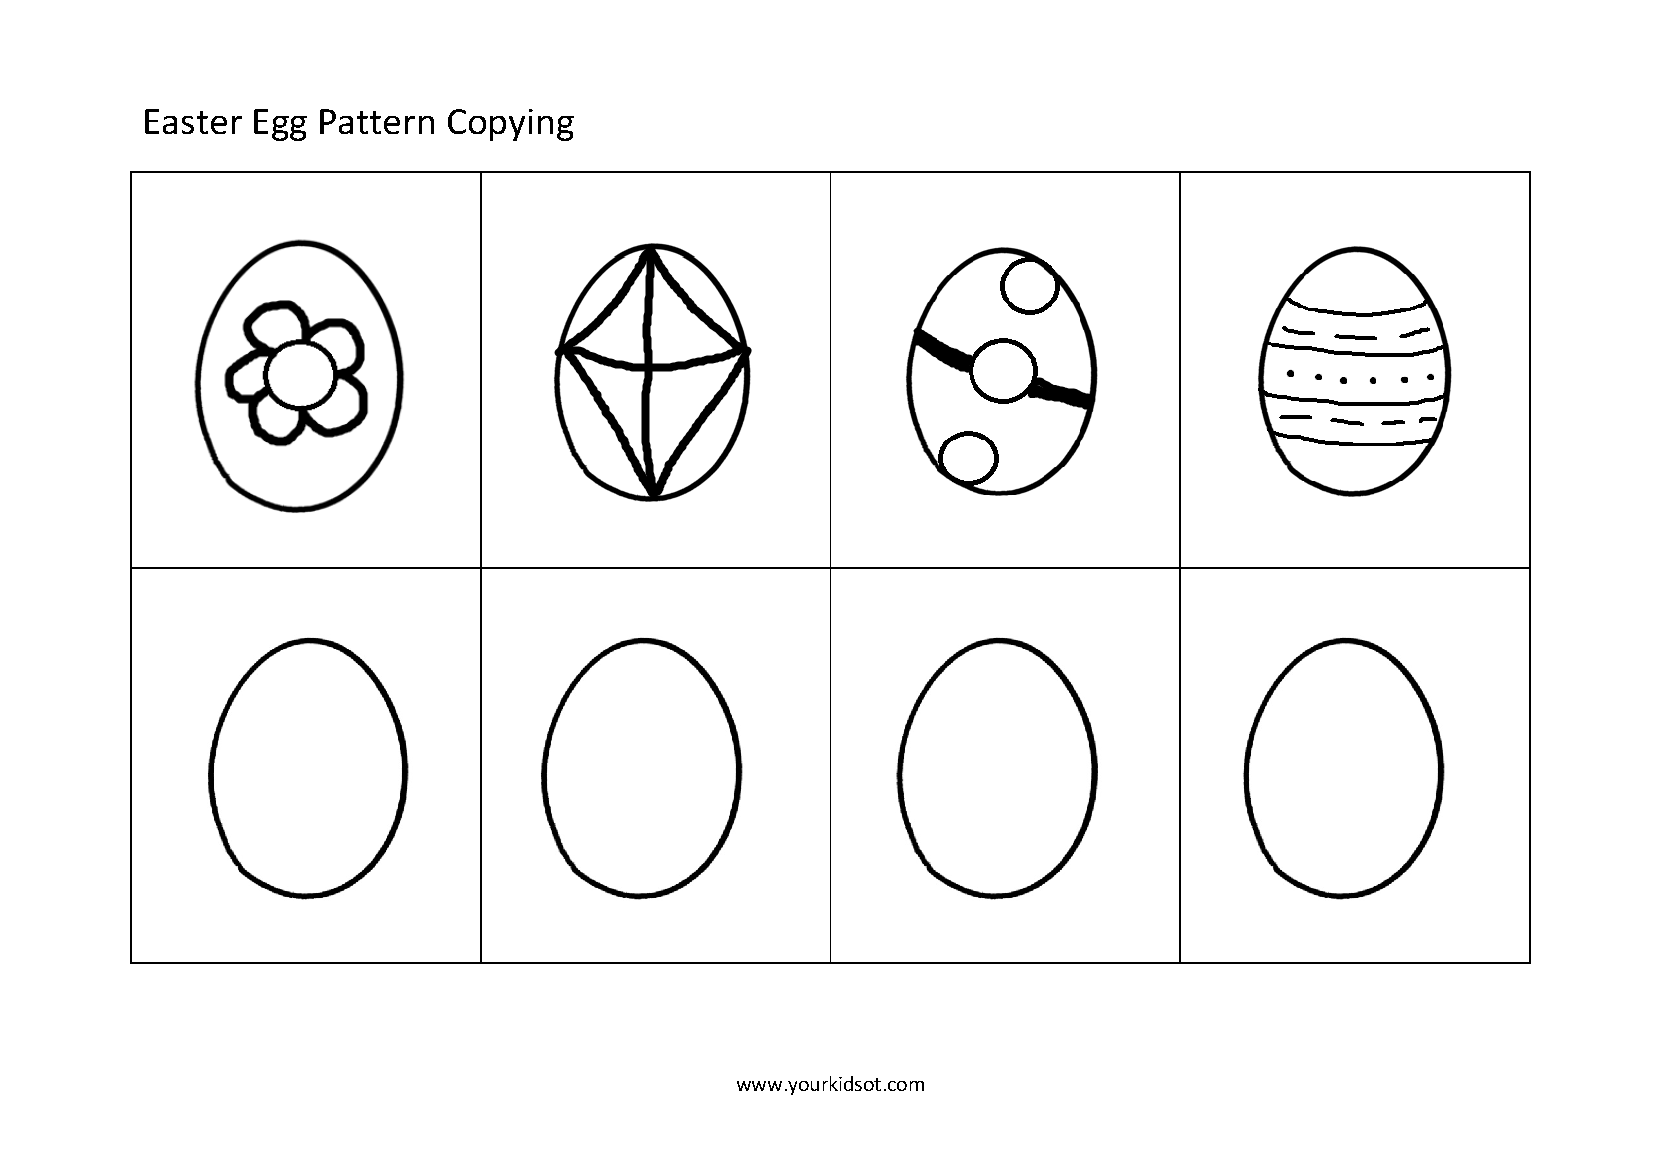 Free Easter Egg Patterns